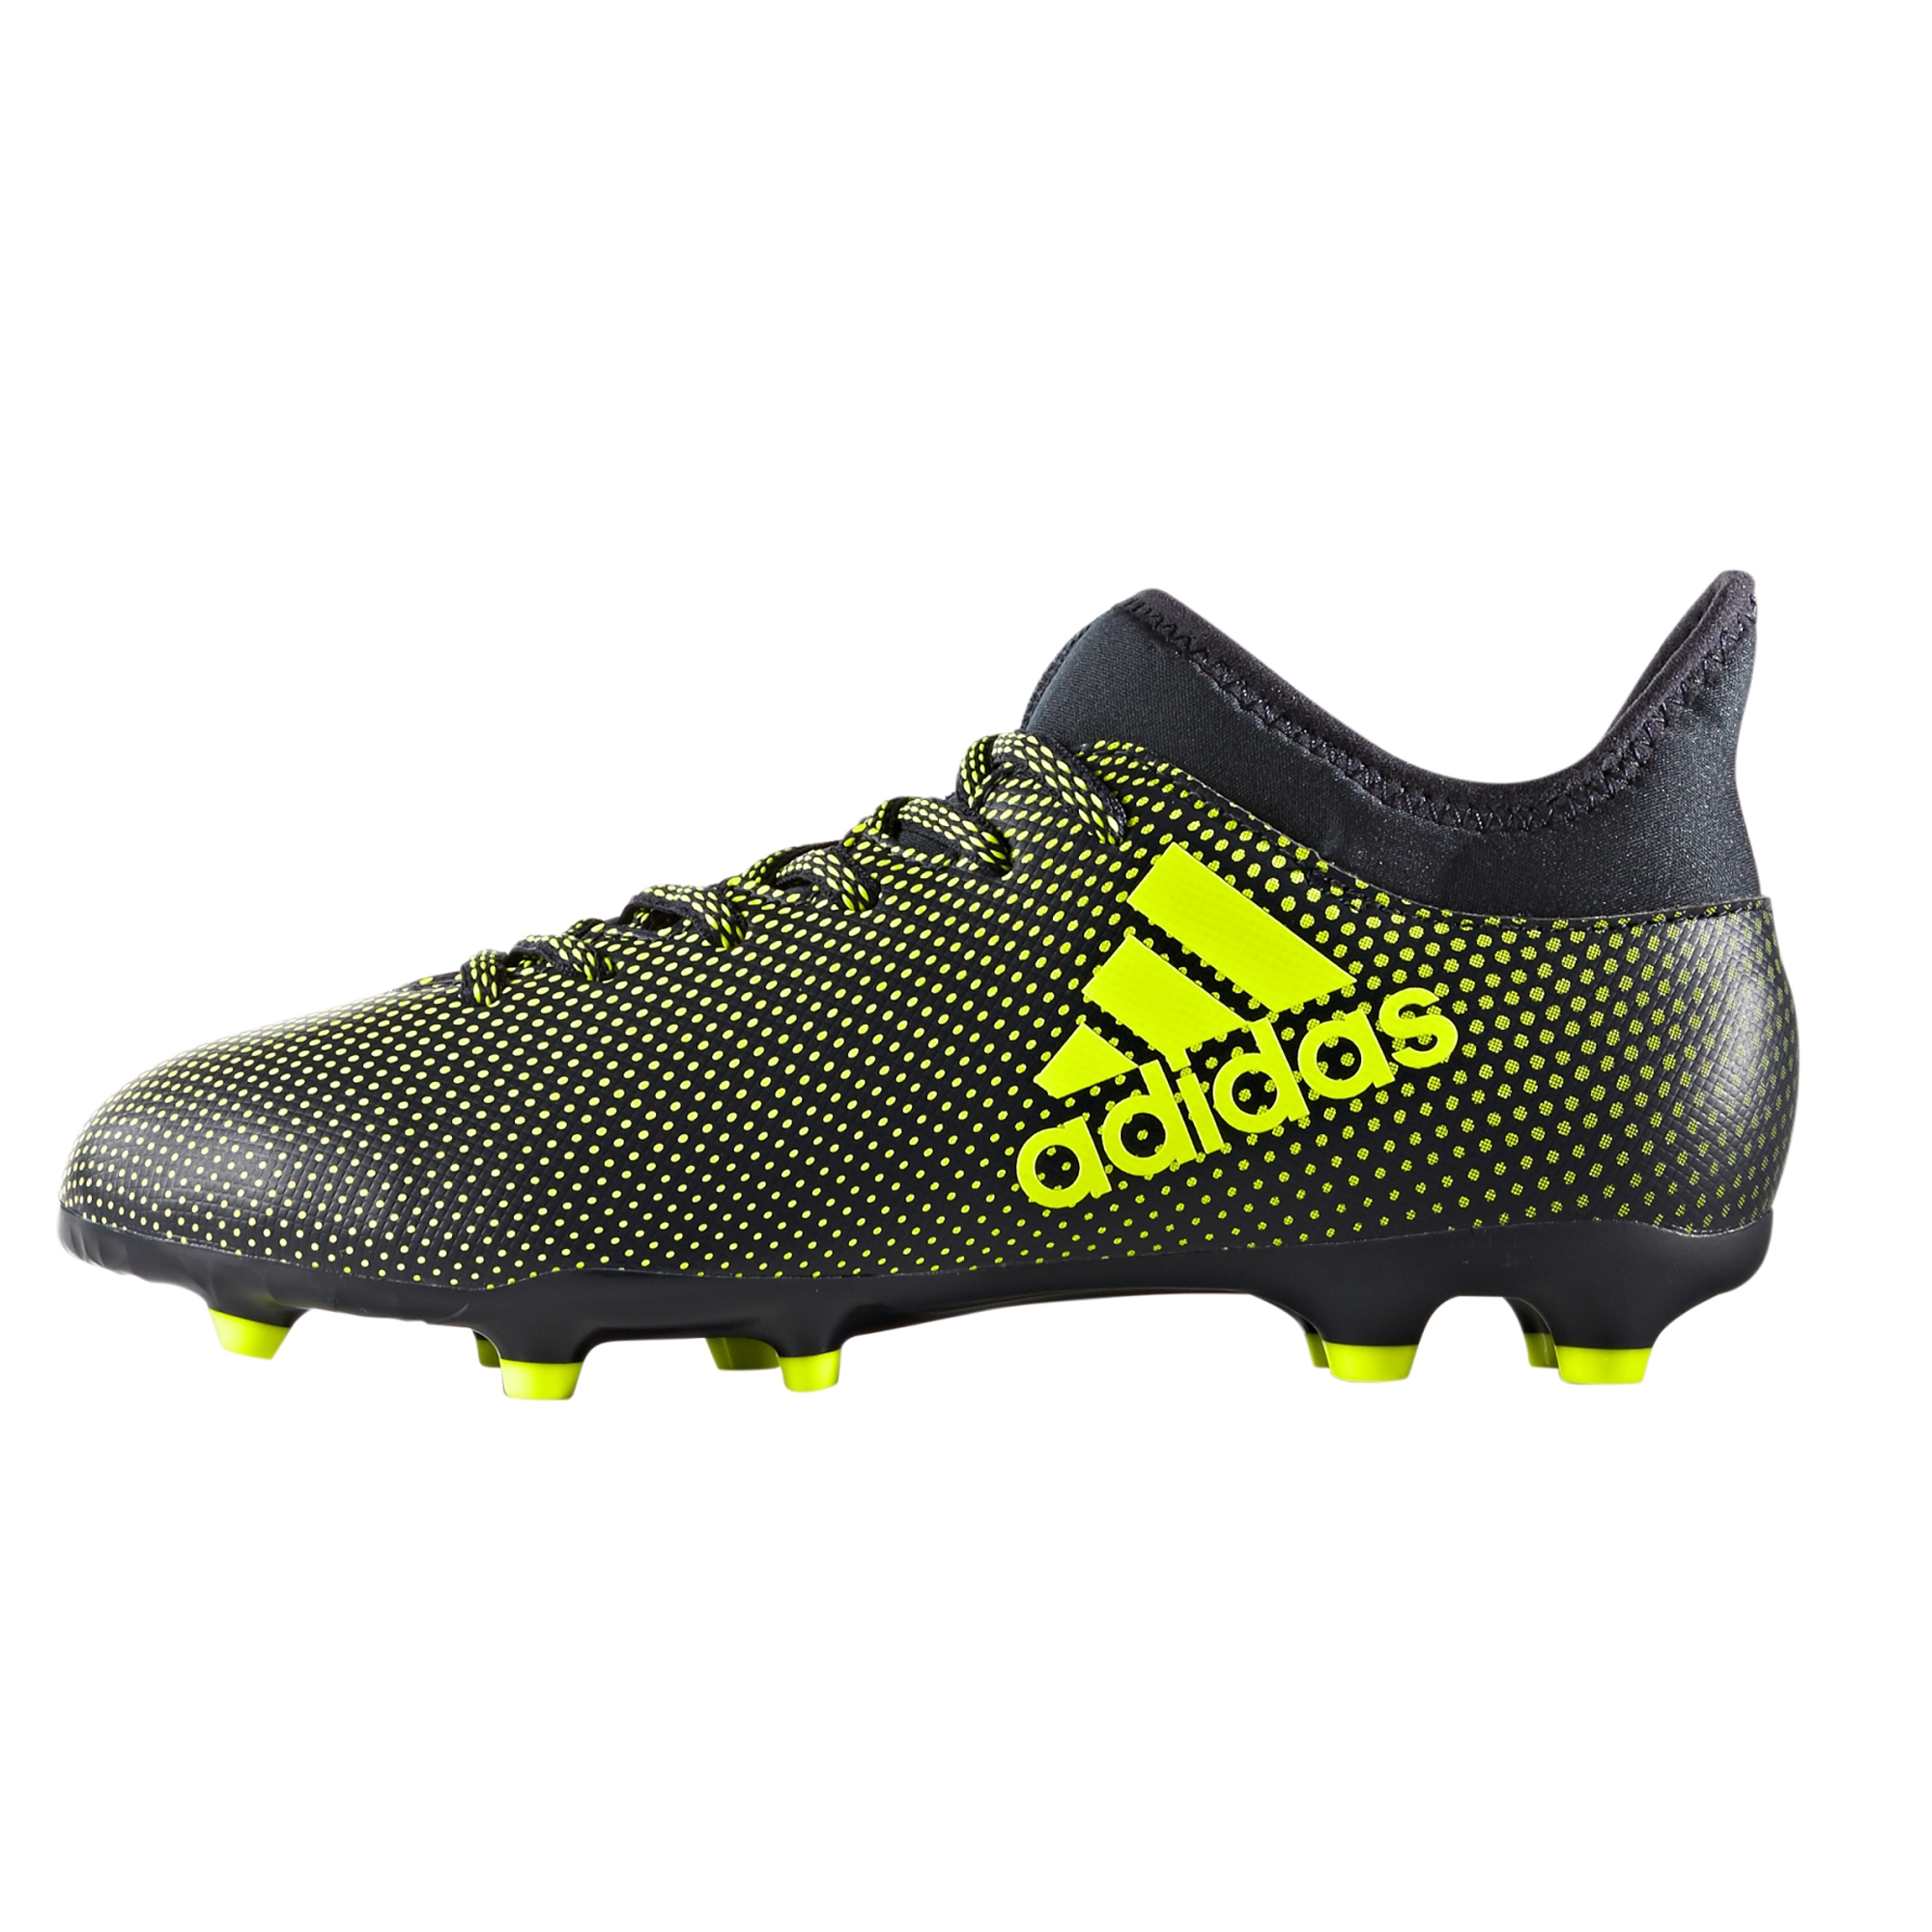 Adidas Men 's X17 3 FG Football Boots Ink/Yellow B074QMYJWW